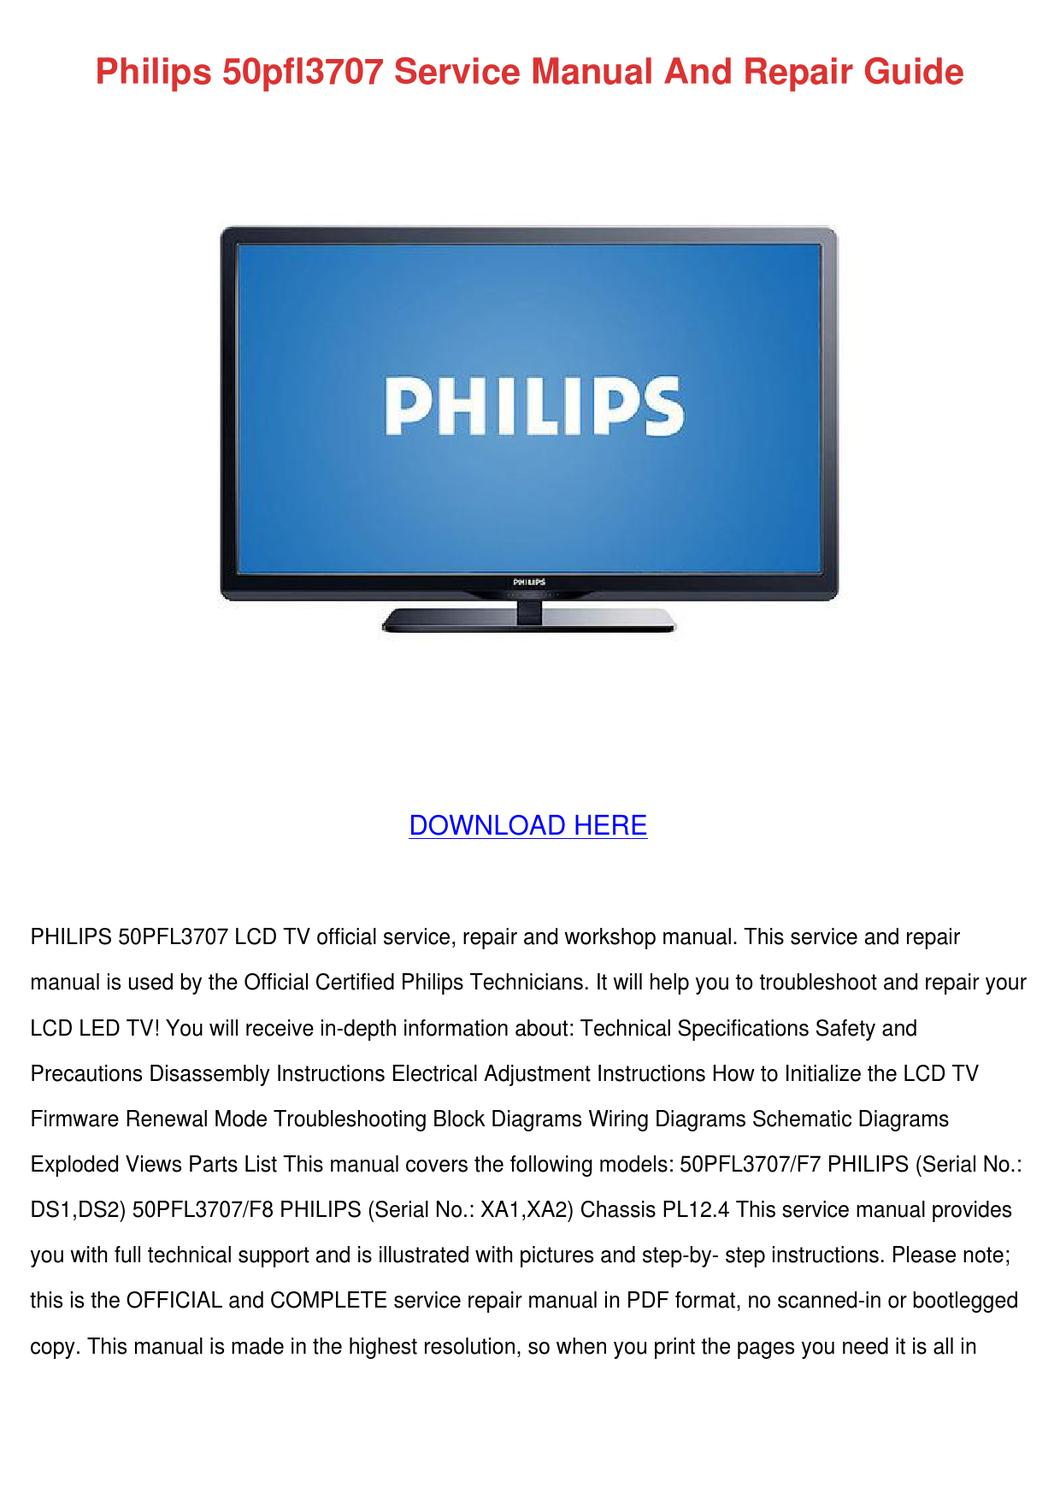 Philips 50pfl3707 Service Manual And Repair G by TonySpencer4 - issuu